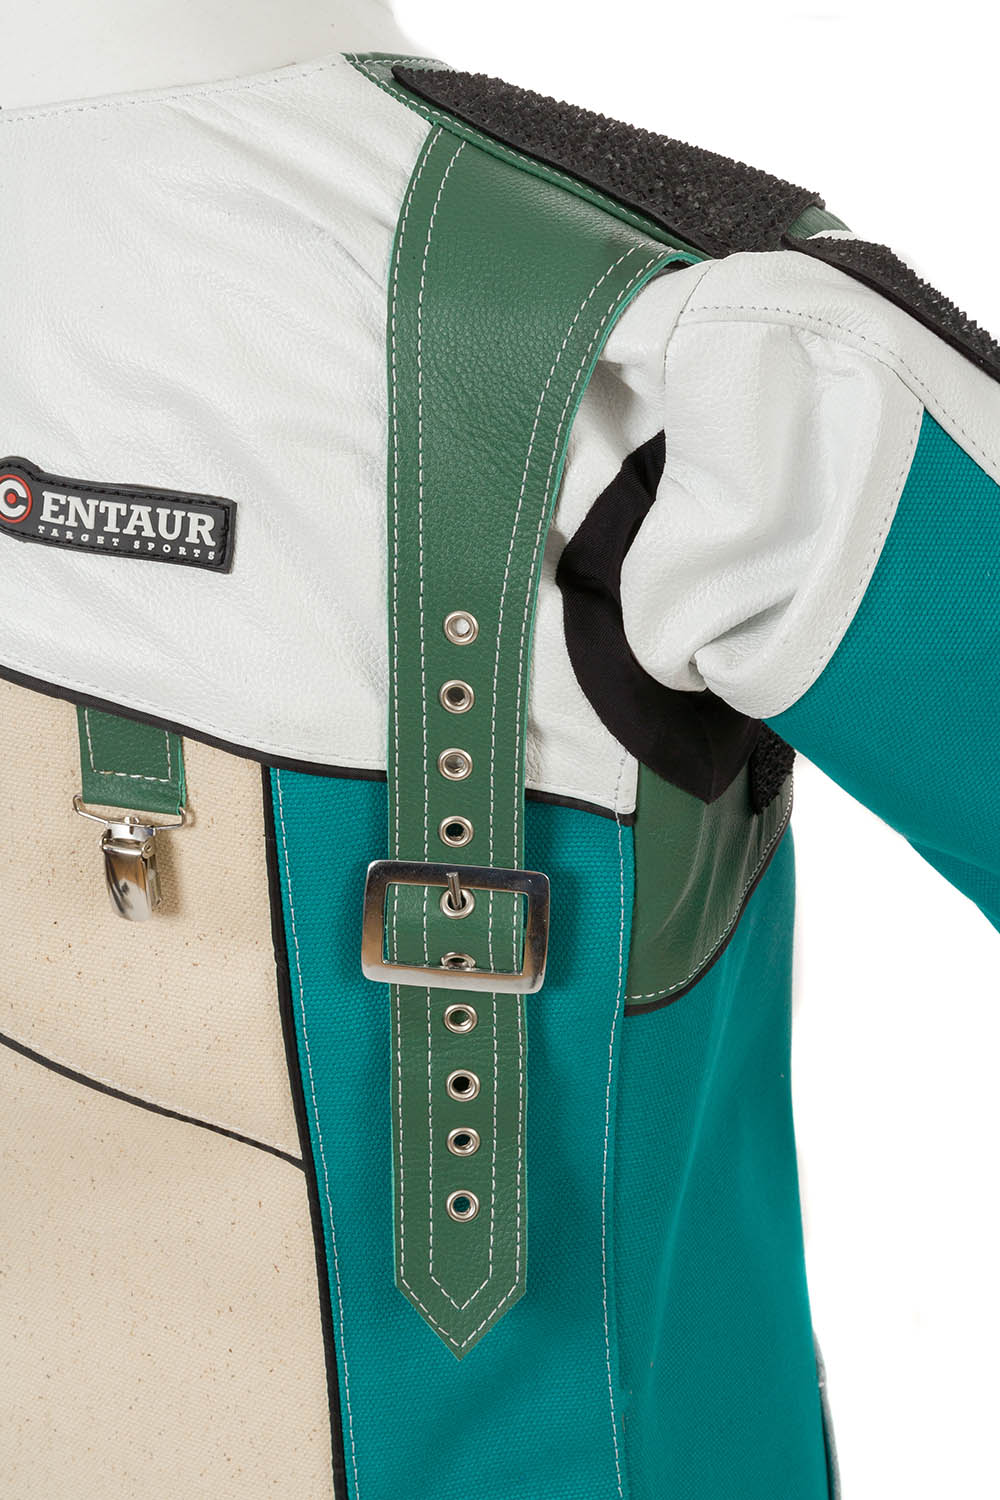 Leather shoulder strap - Centaur Match 19 Double Canvas and Leather Target Shooting Jacket